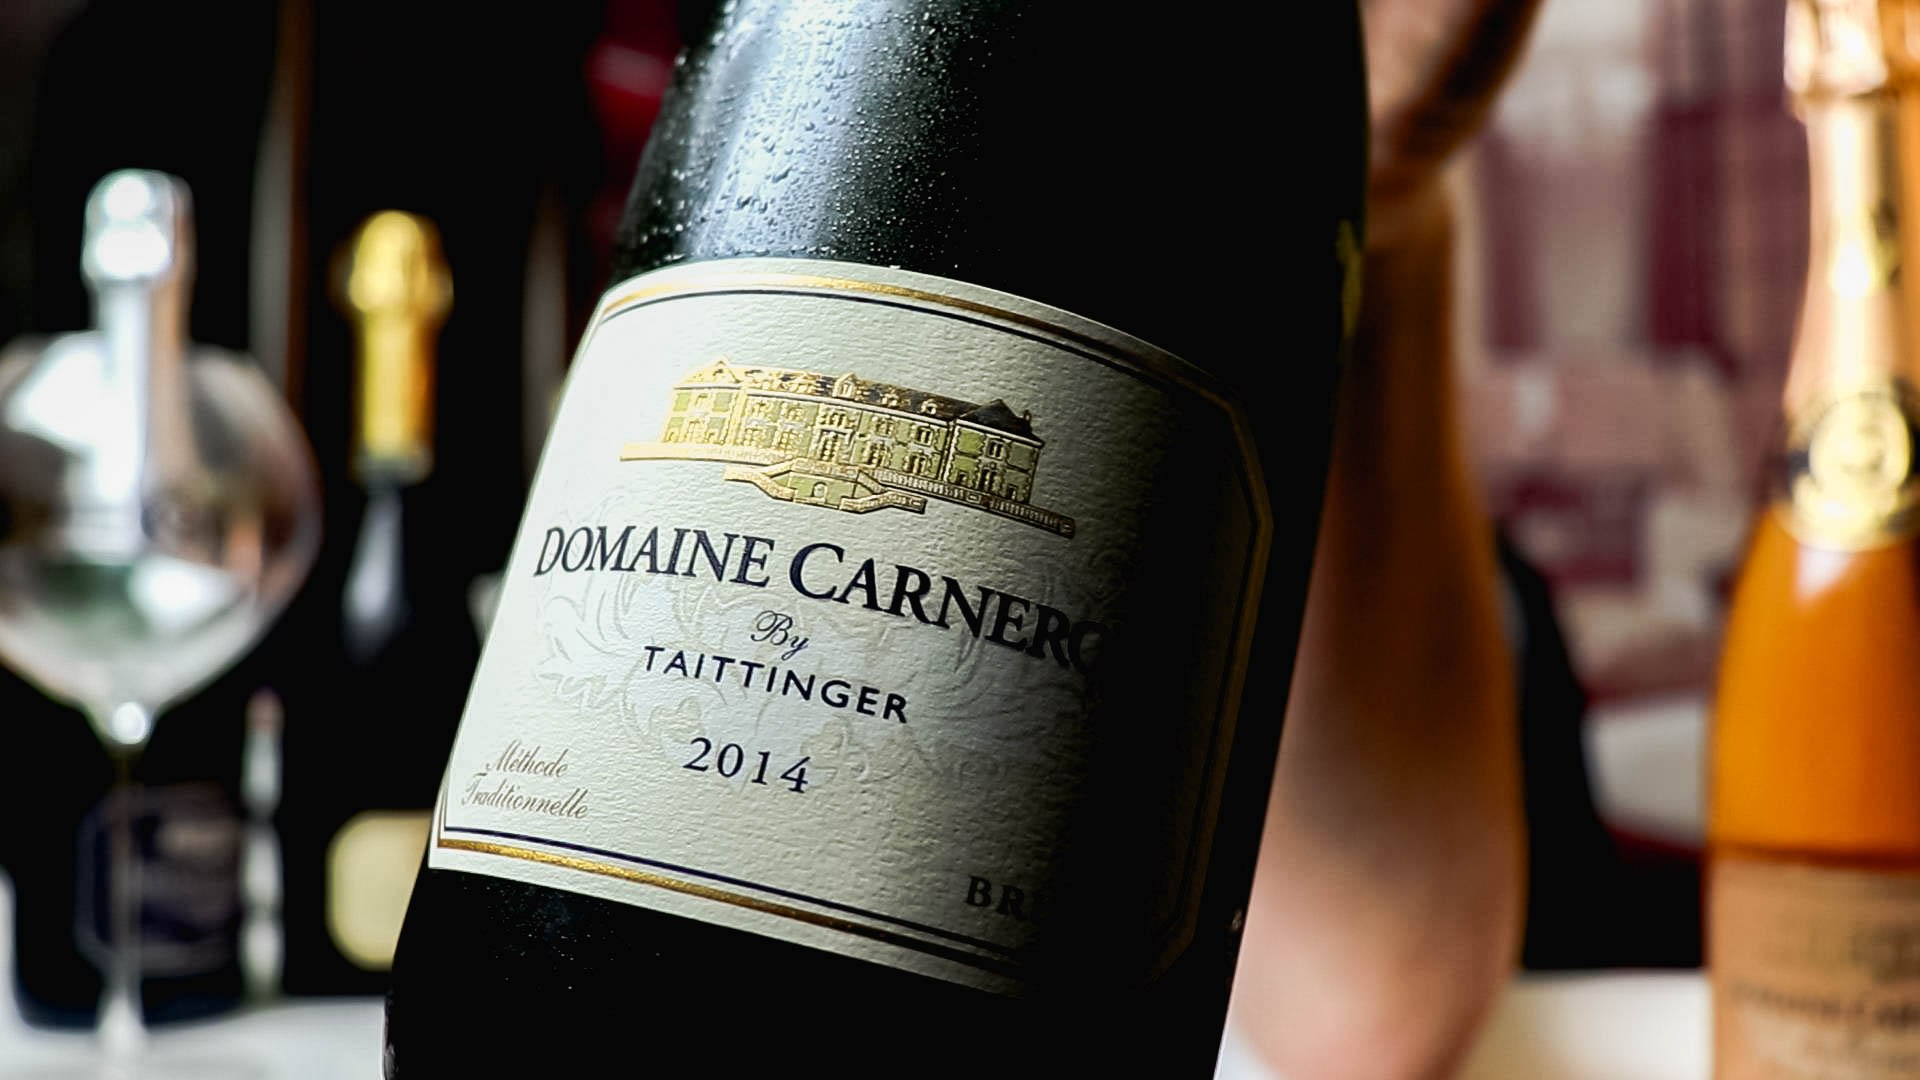 The Sparkling Wines Of Domaine Carneros – Tasting Reviews photo